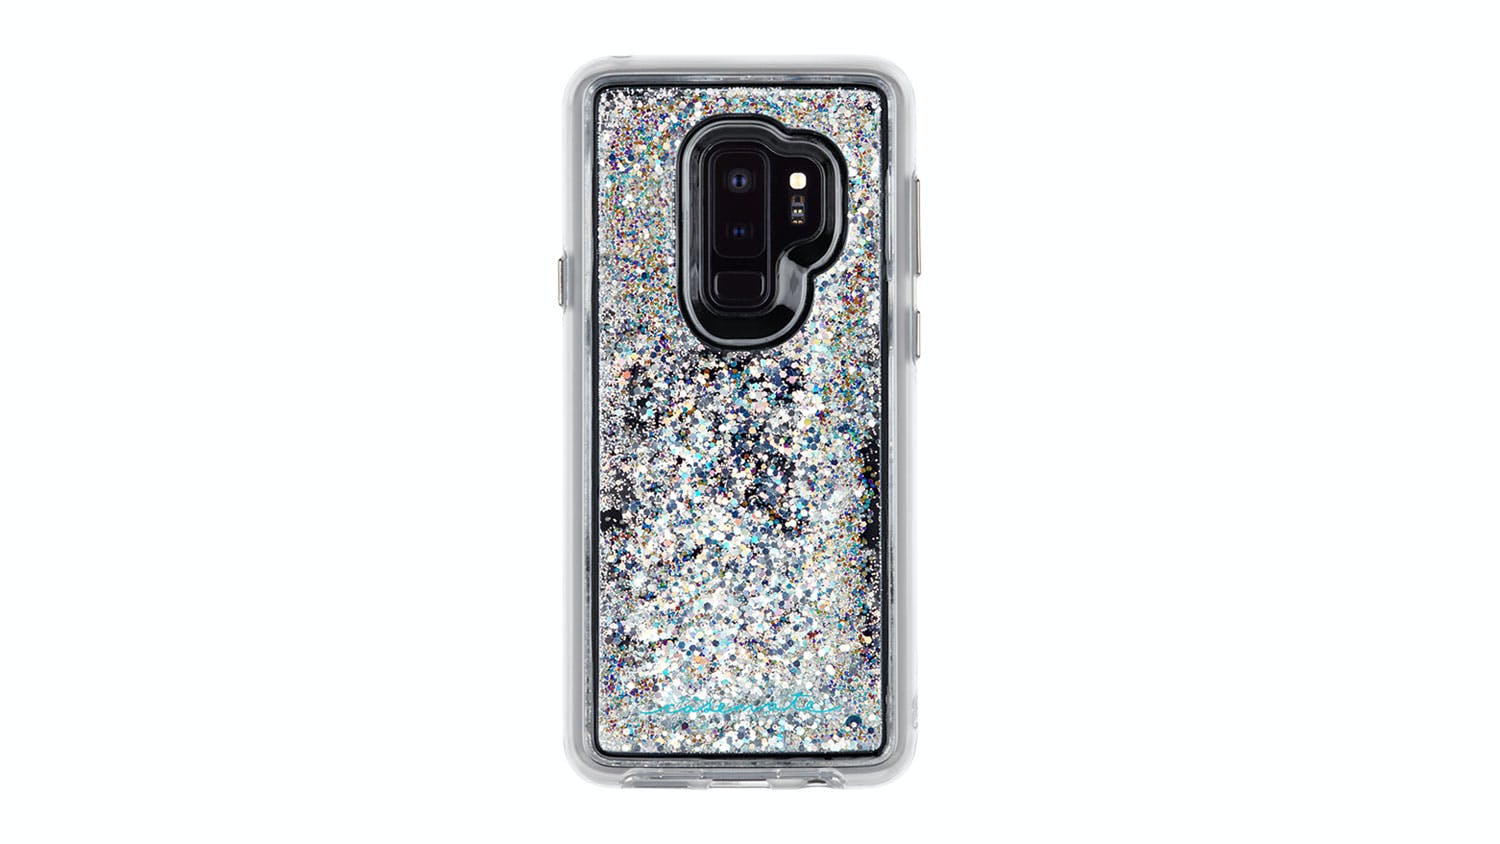 separation shoes 62f60 581ad Case-Mate Waterfall Case for Samsung Galaxy S9+